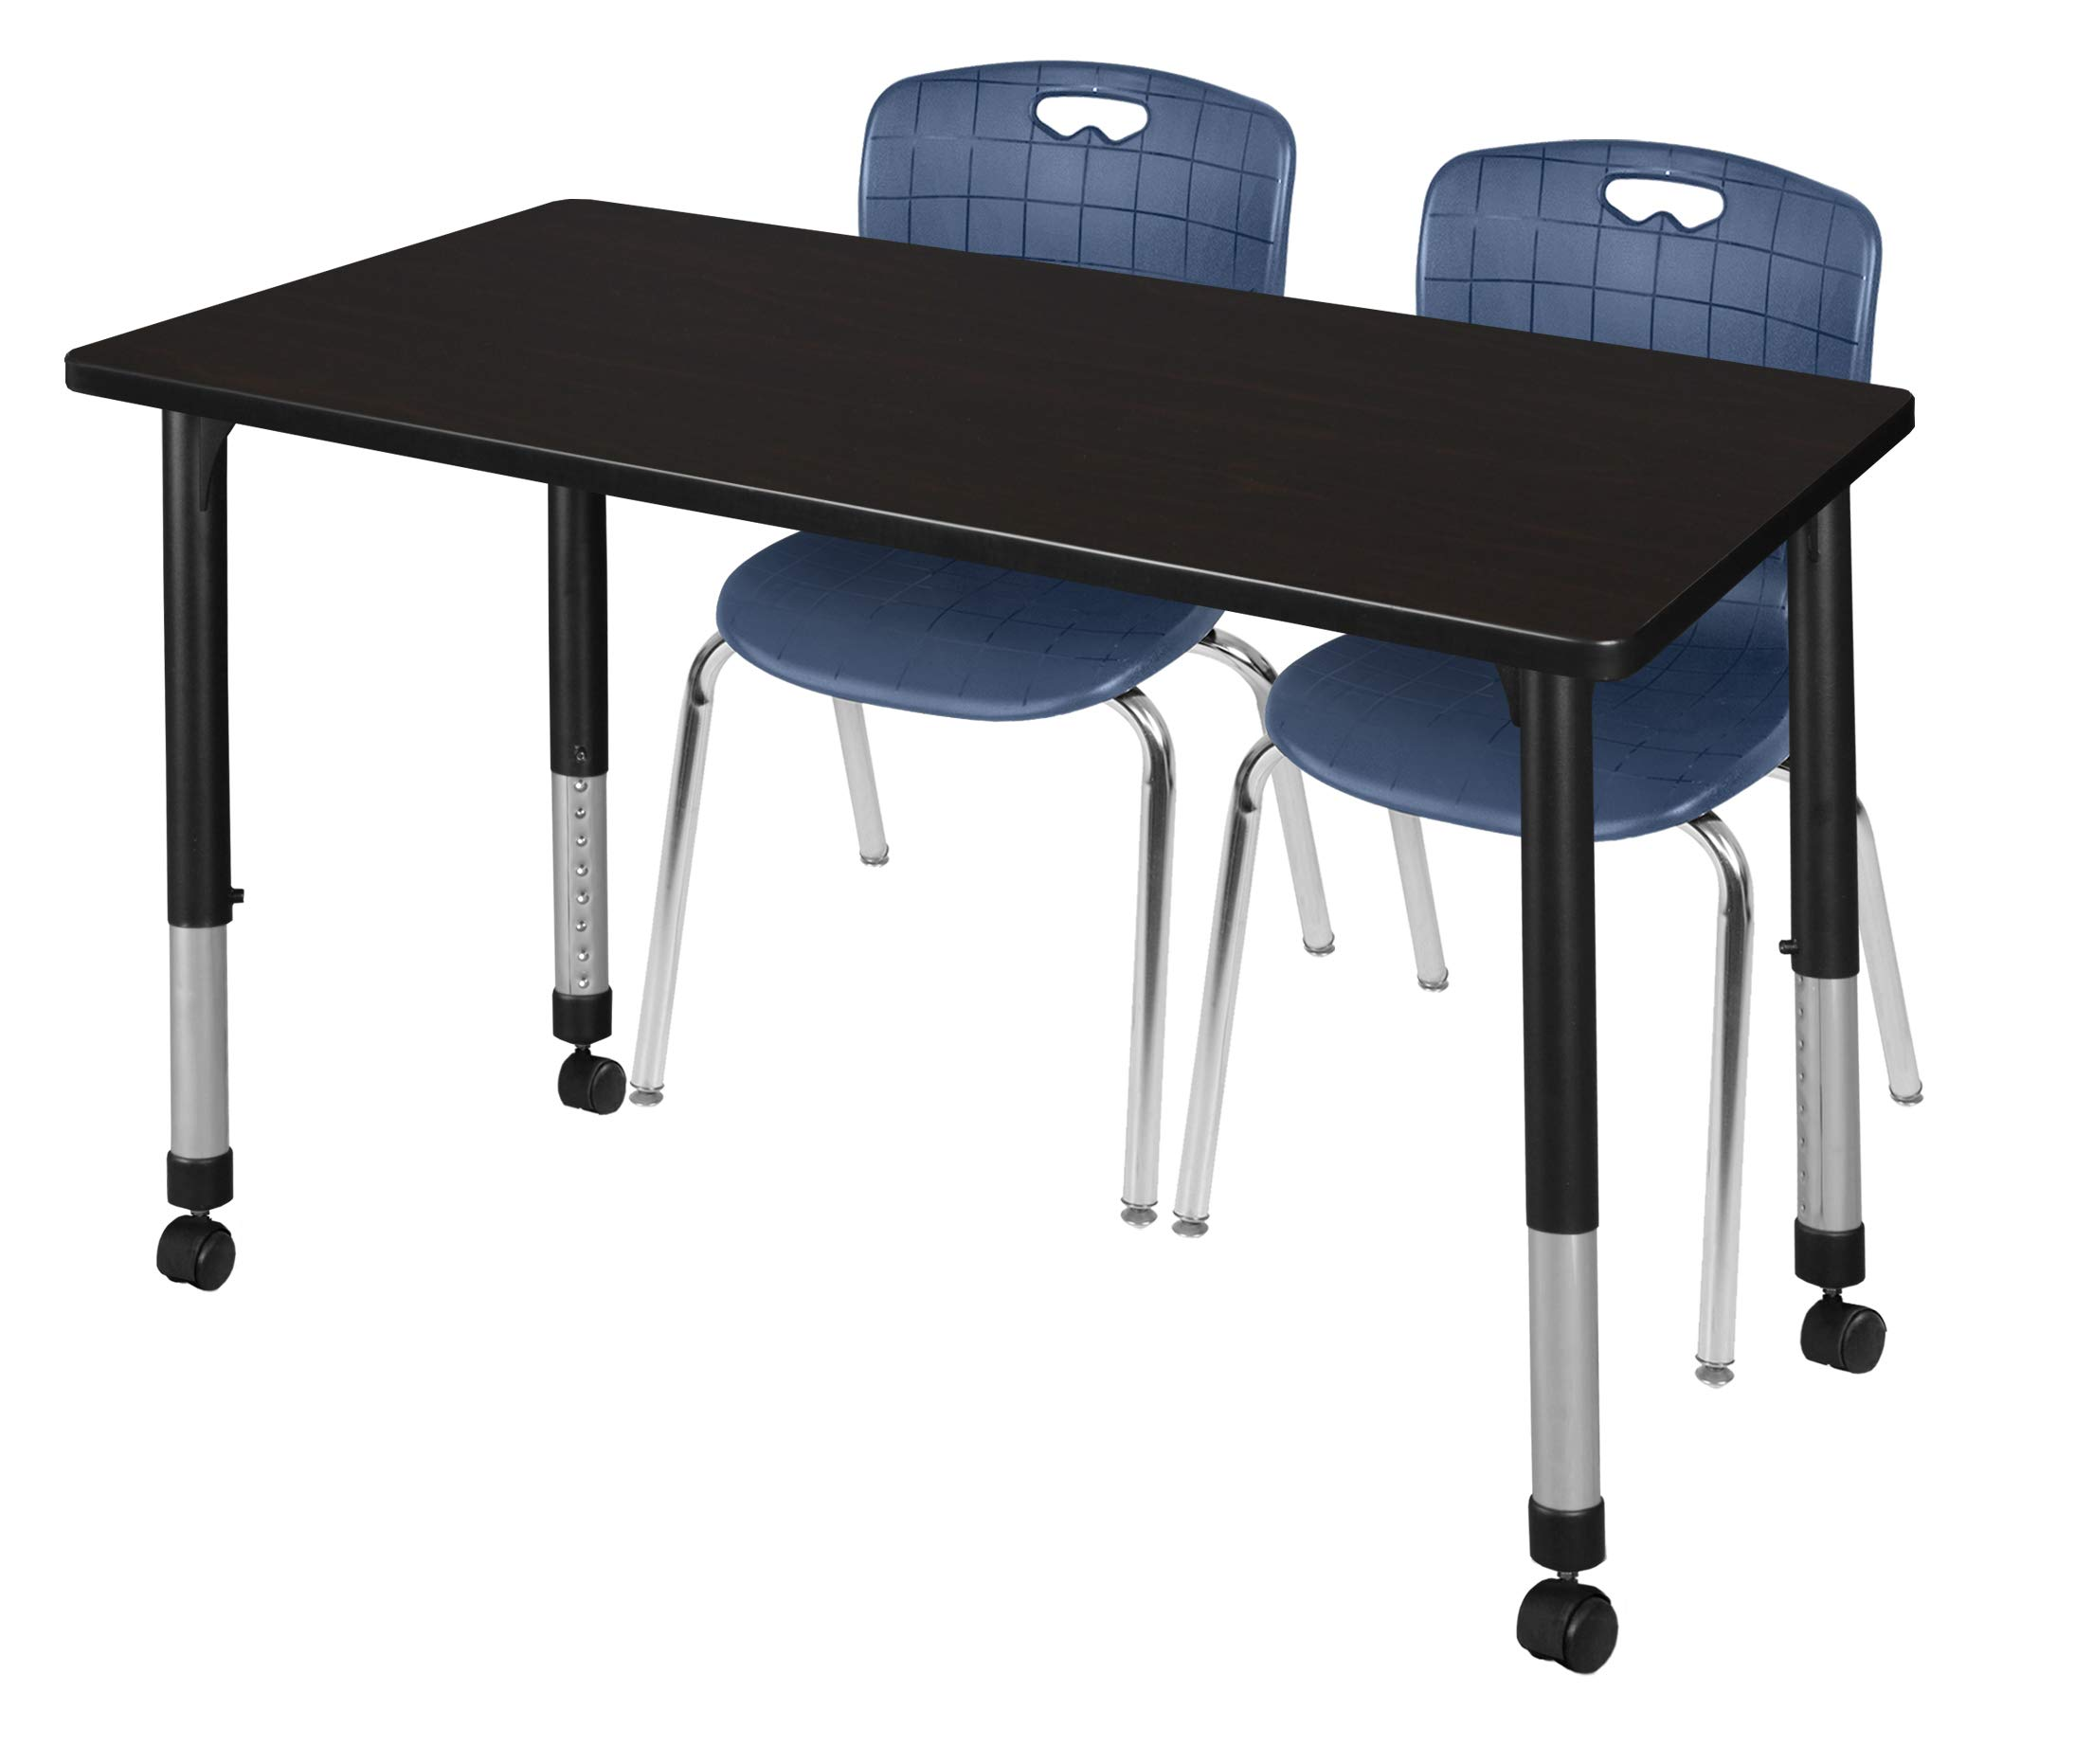 Regency MT4830MWAPCBK40NV Kee Height Adjustable Mobile Classroom Table Set with Two 18'' Andy Chairs 48'' x 30'' Mocha Walnut/Navy Blue